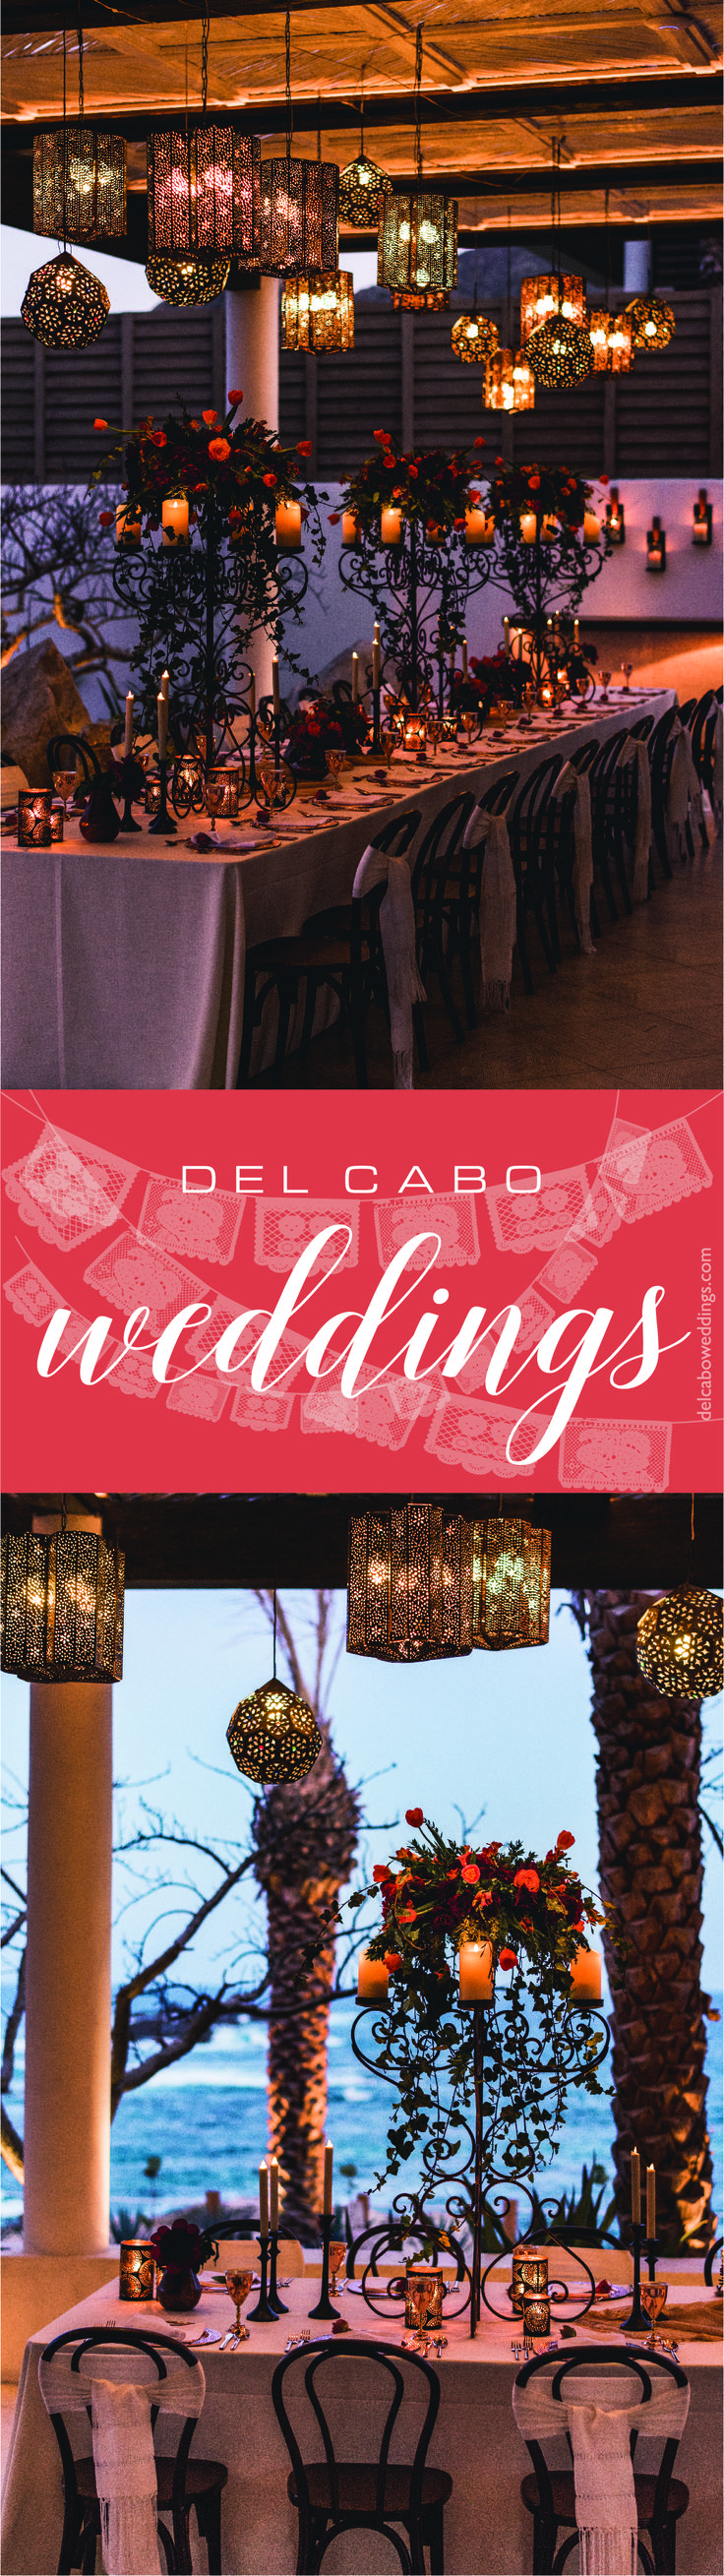 We LOVE this Mexican beach wedding reception! Del Cabo Weddings will help you plan your dream destination wedding in Cabo!  Click on the image and visit our website!